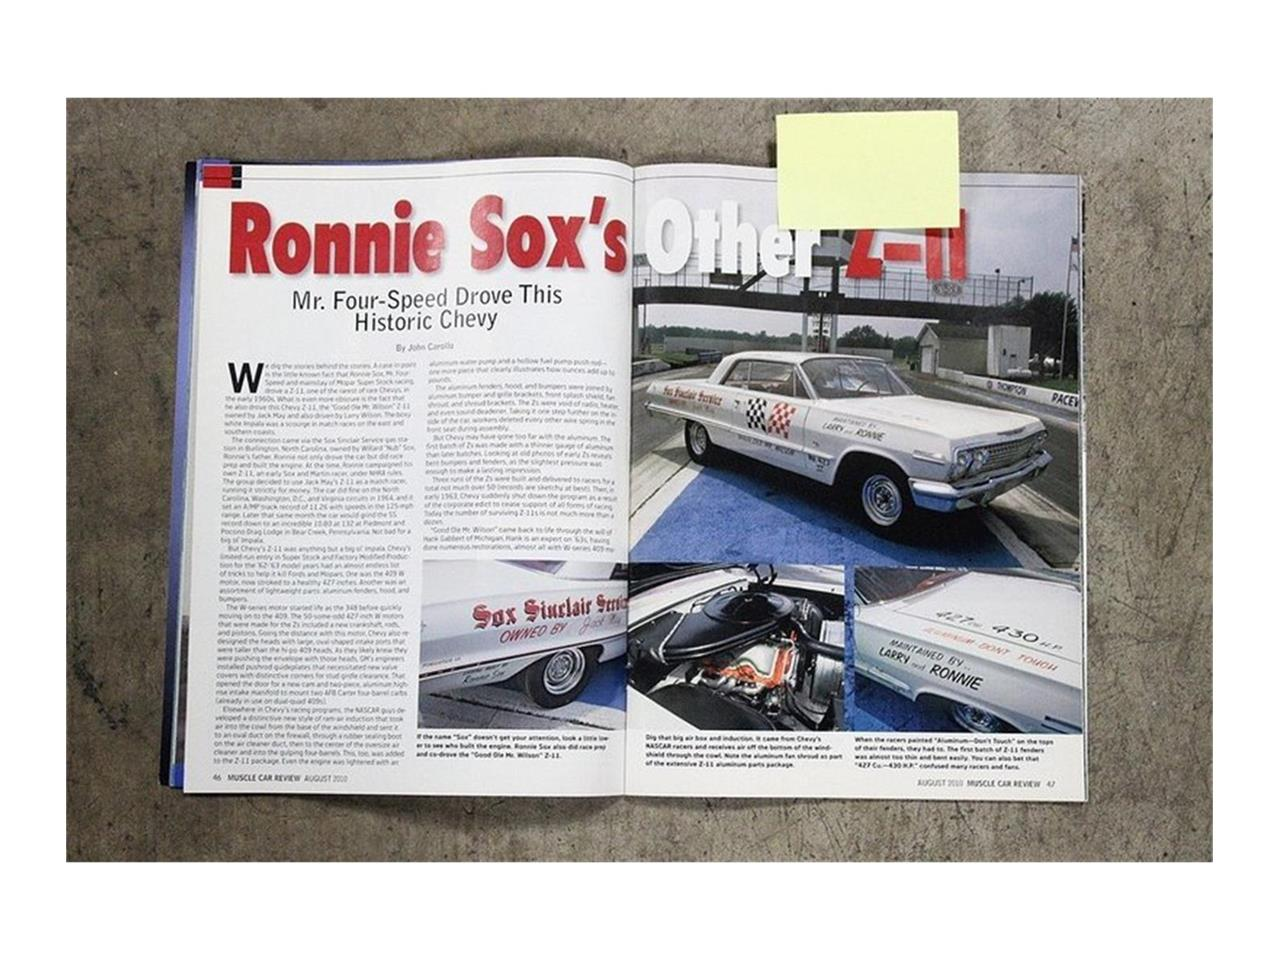 Large Picture of Classic '63 Chevrolet Impala - $360,000.00 Offered by a Private Seller - QK96